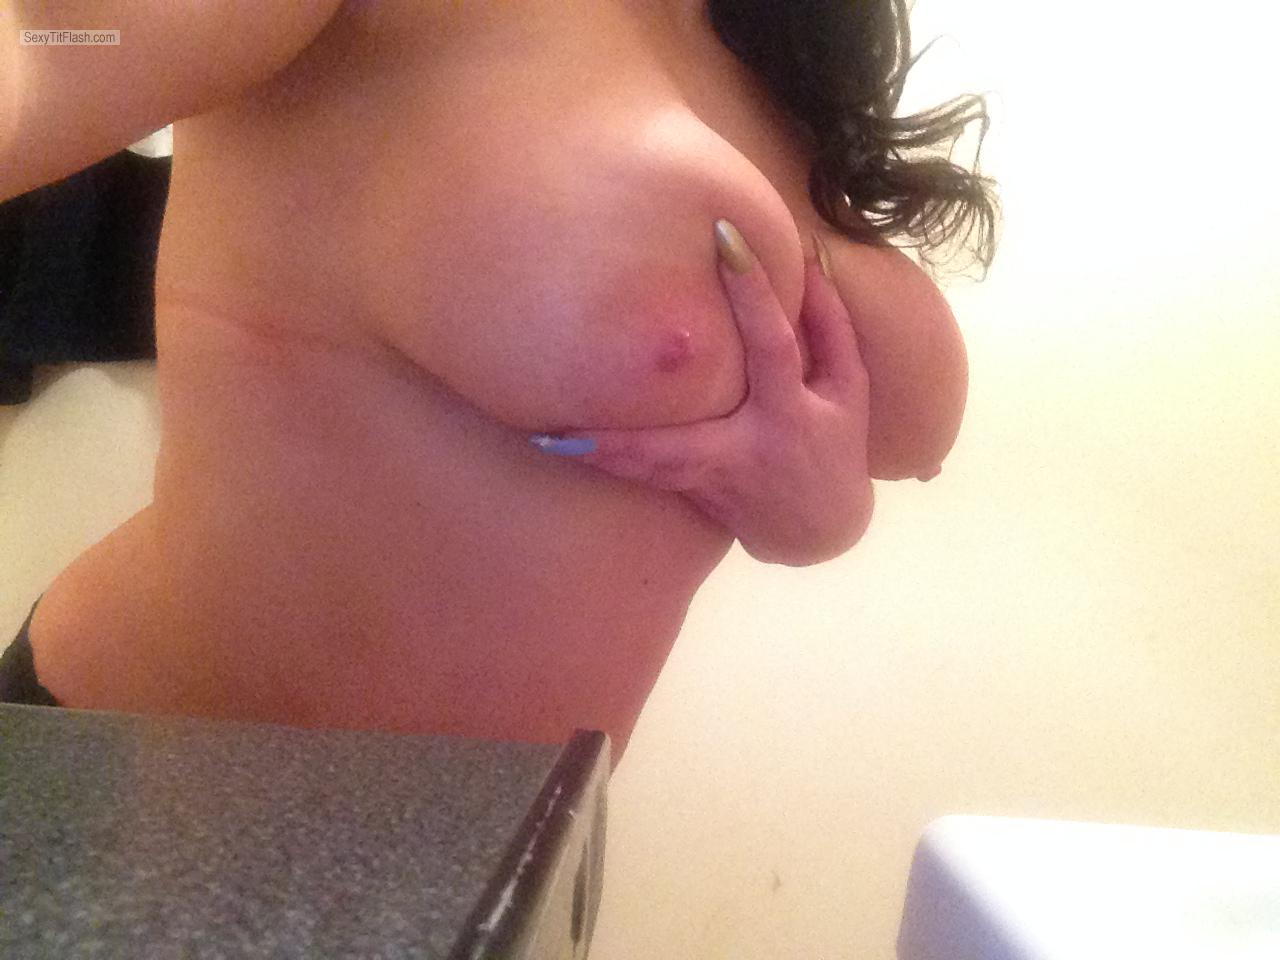 Tit Flash: My Big Tits - Kissmynipples from United Kingdom